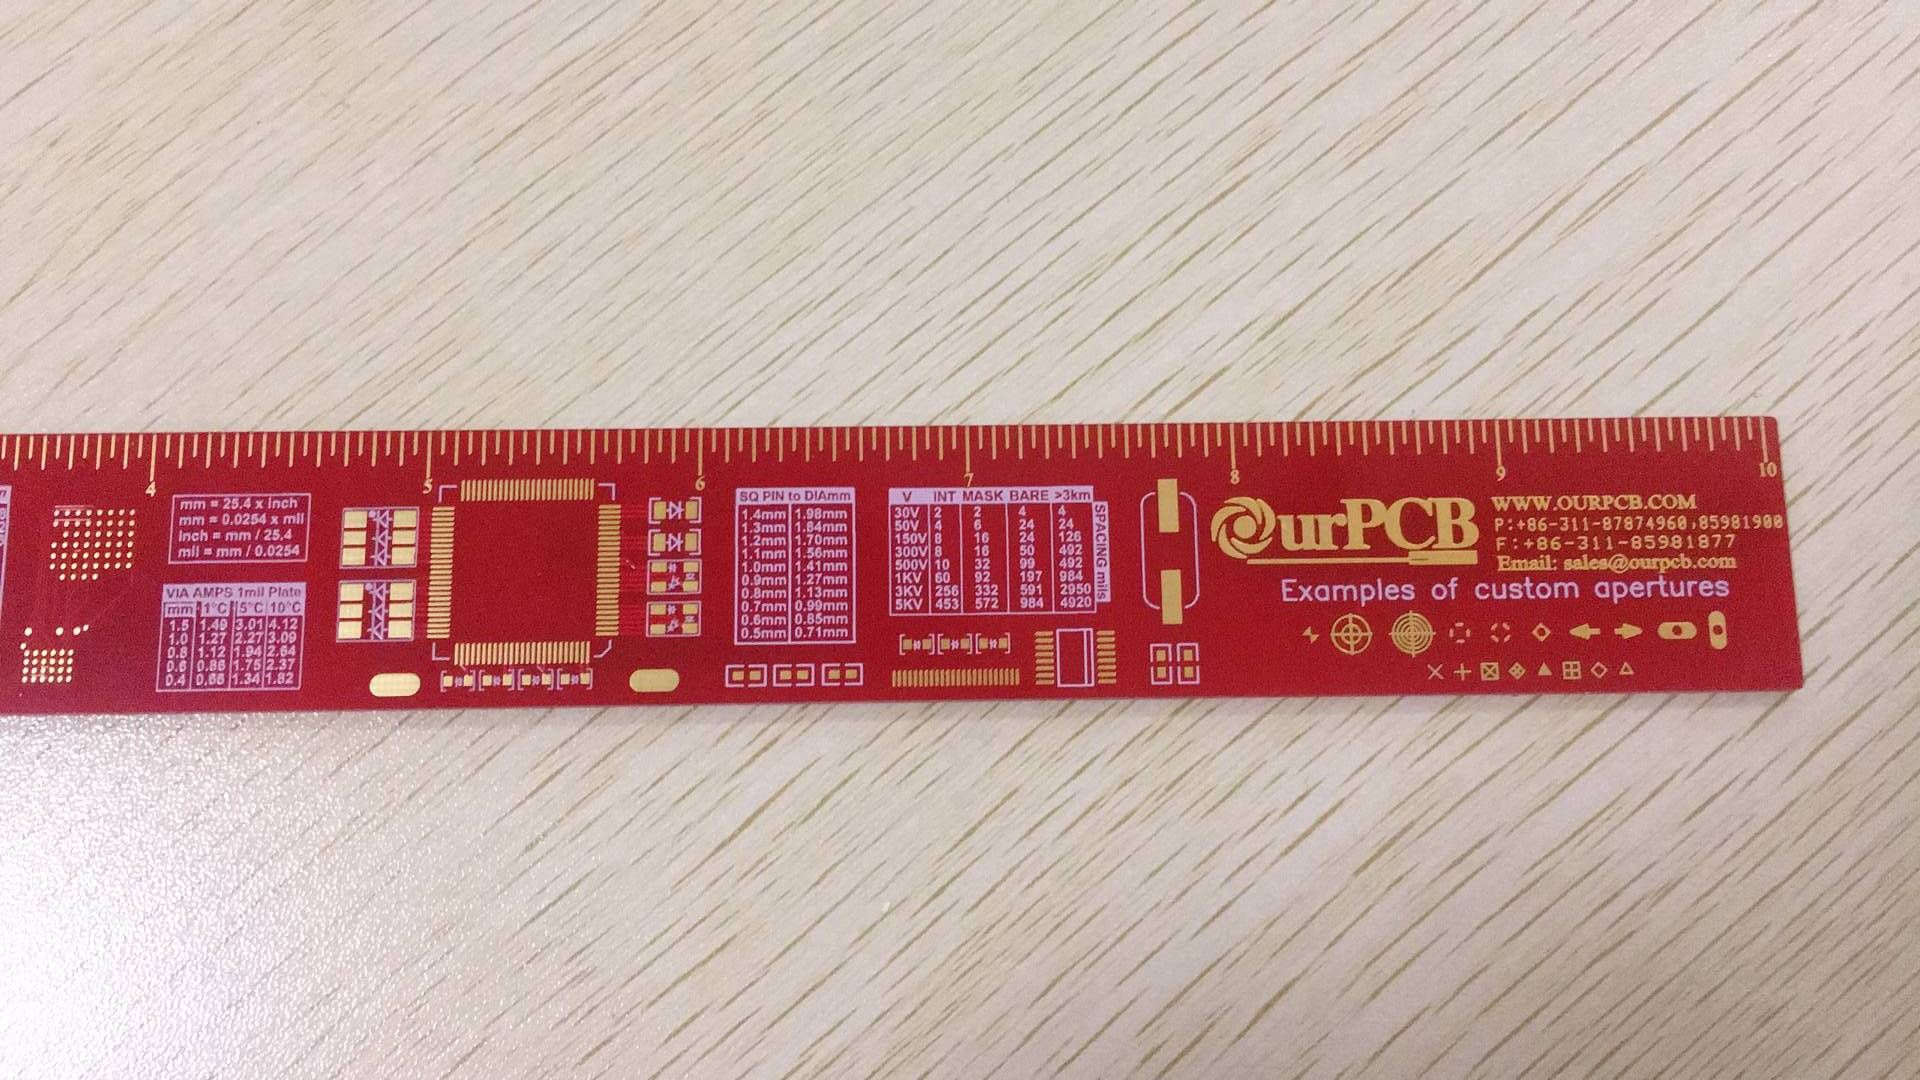 Ourpcb Company Made An Interesting Ruler Pinterest Printed Circuit Board Assembly Manufacture